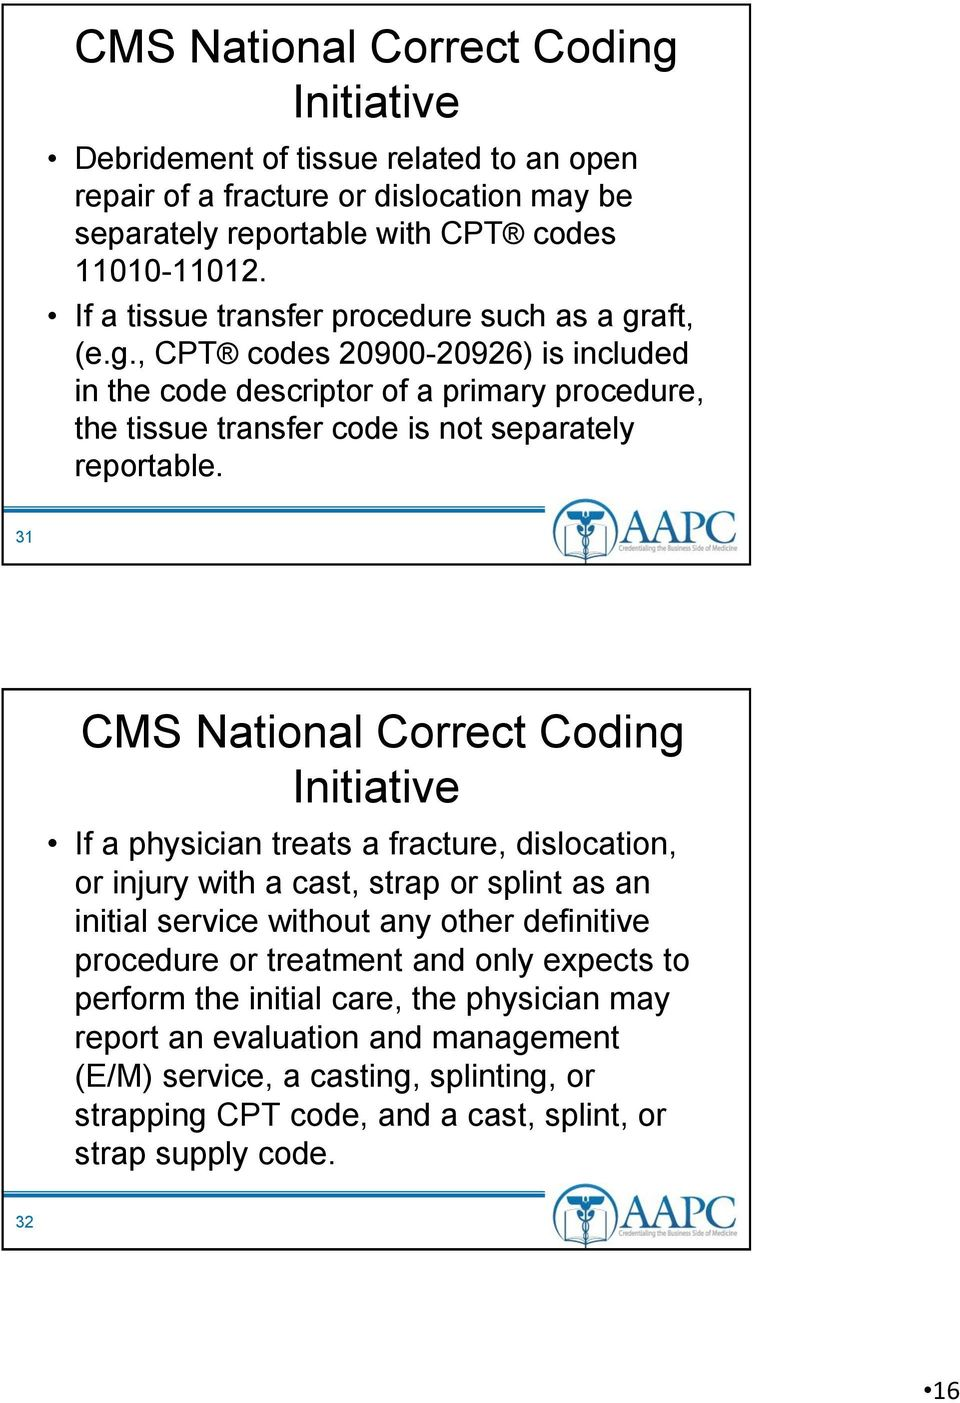 31 CMS National Correct Coding Initiative If a physician treats a fracture, dislocation, or injury with a cast, strap or splint as an initial service without any other definitive procedure or